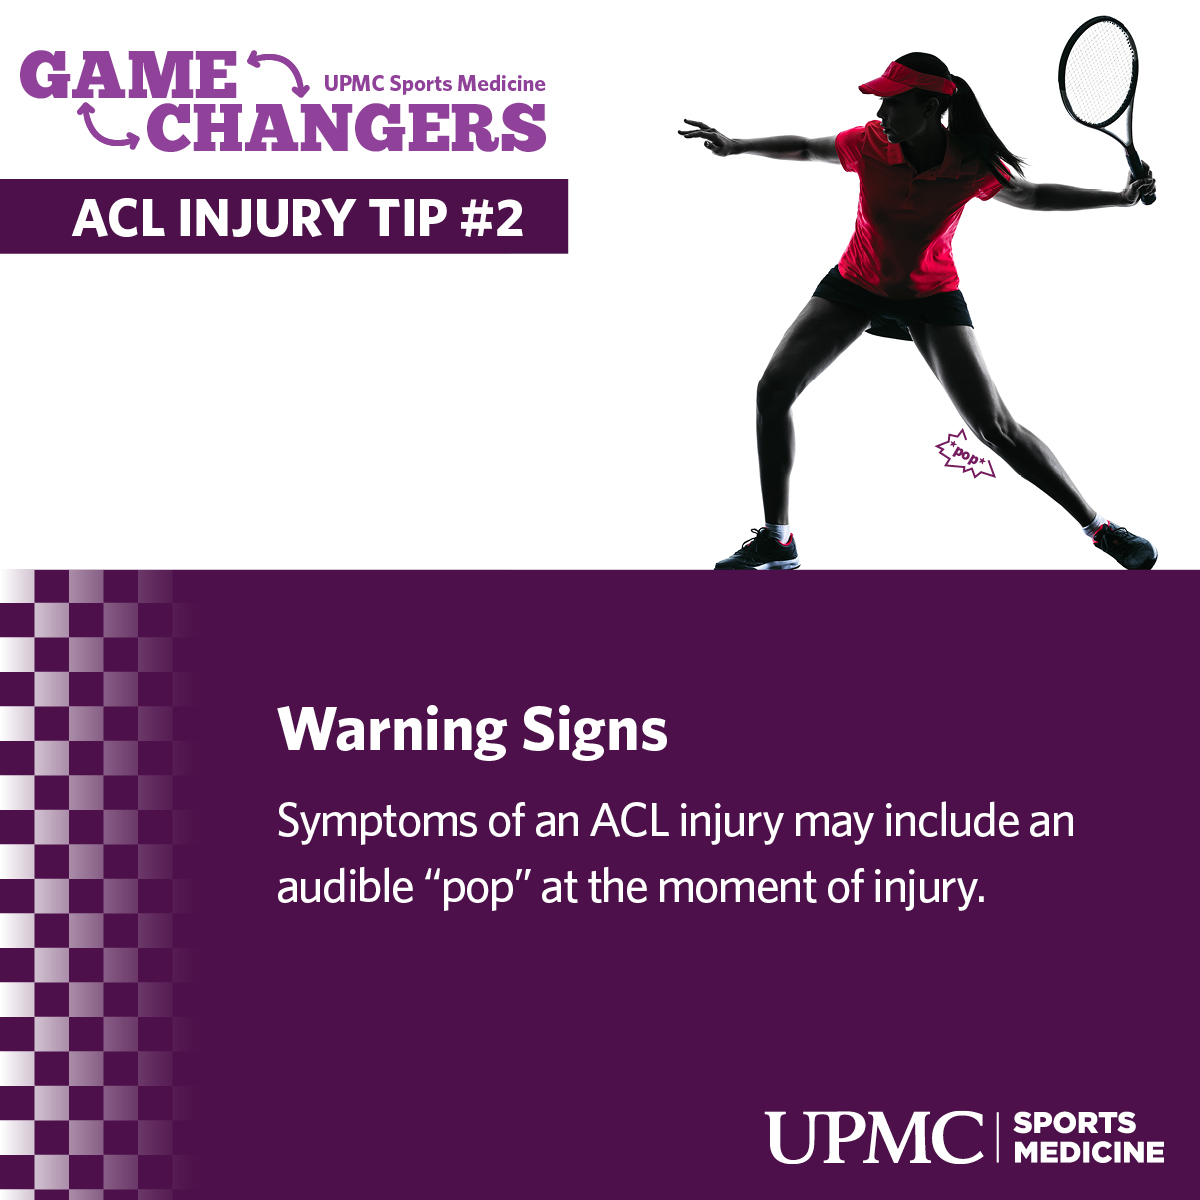 UPMC_GameChangers_ACL_FB2_FINAL